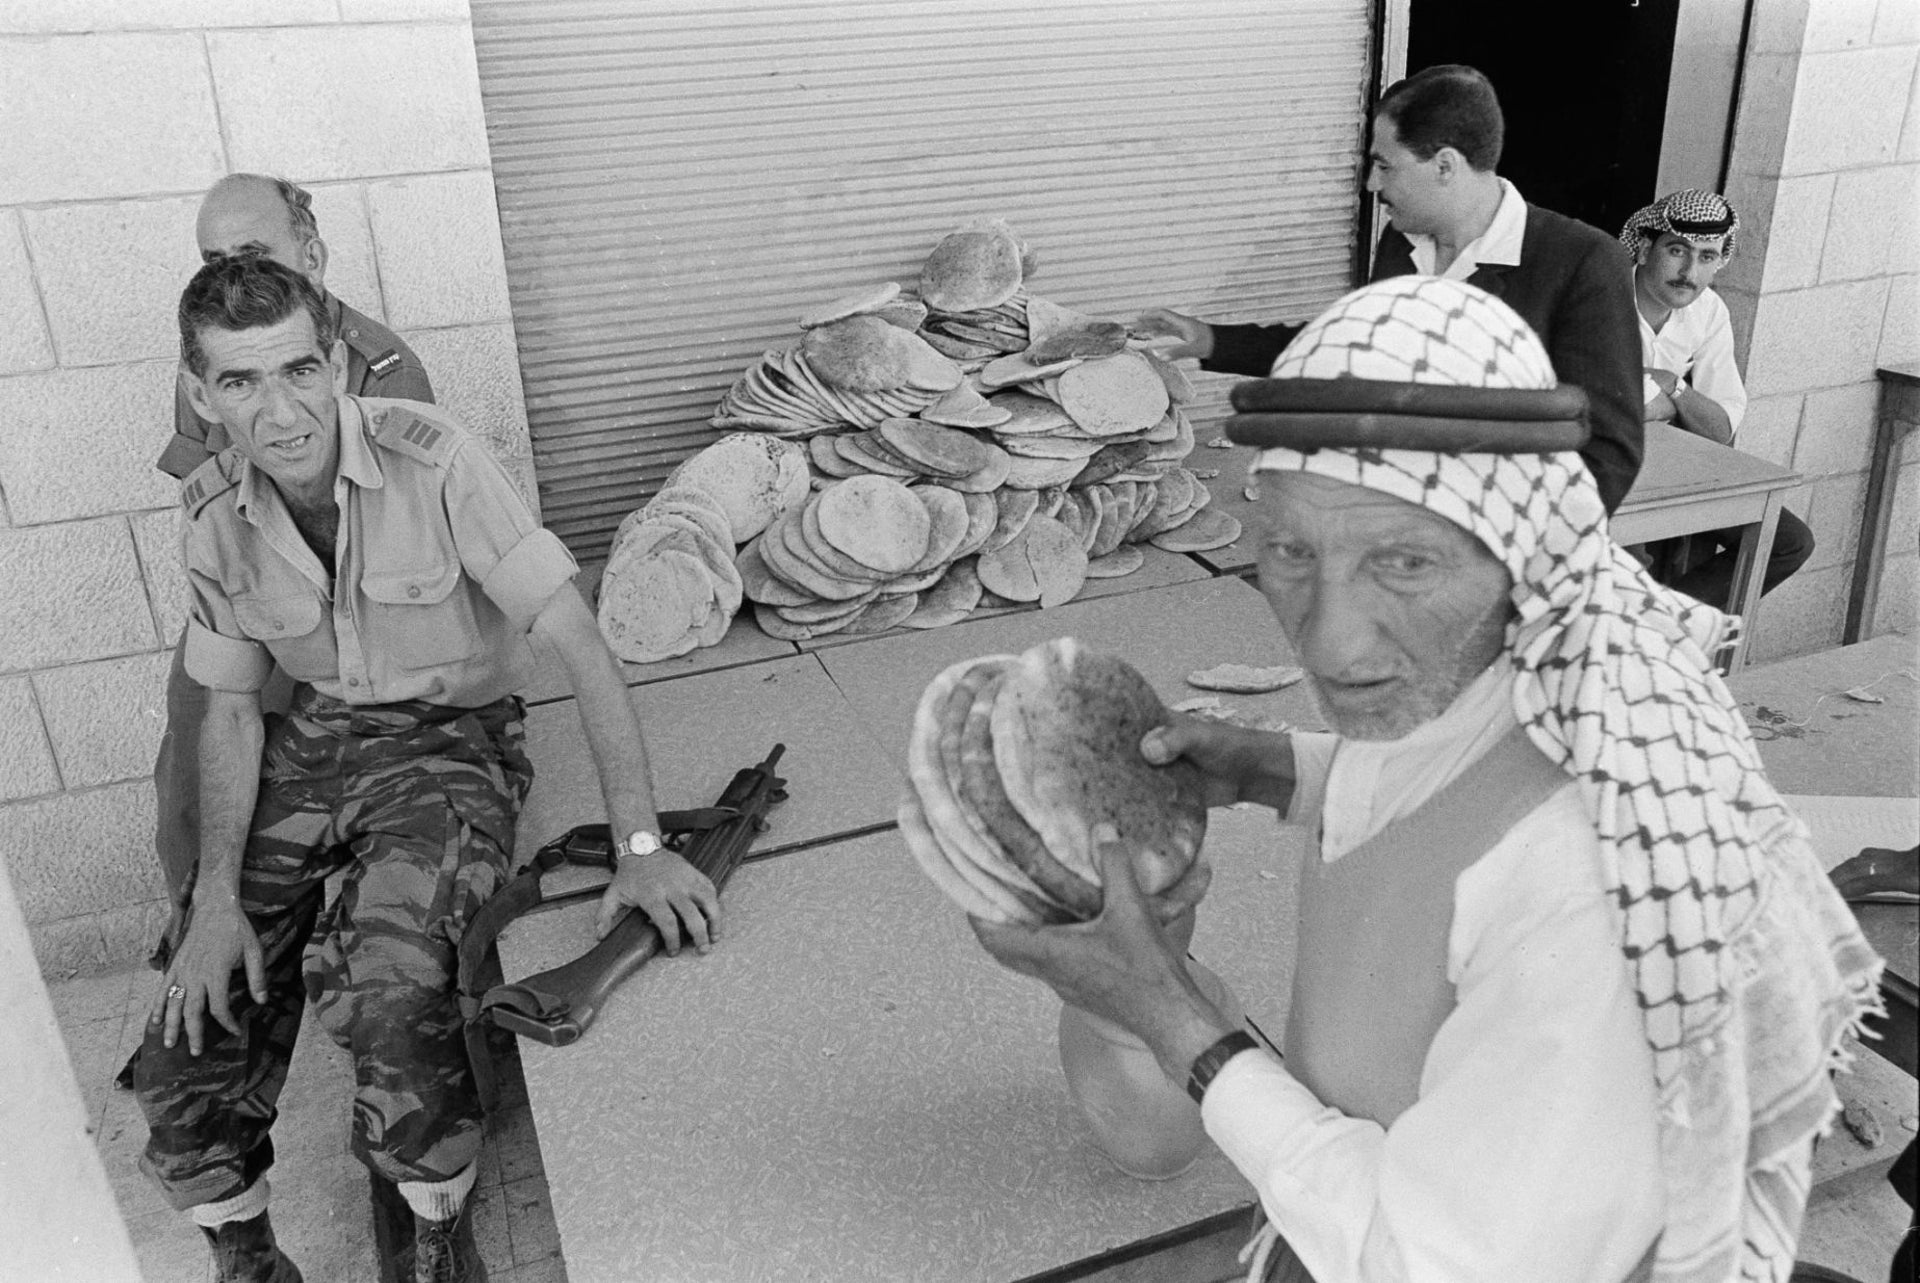 Dividing bread between soldiers in Qalqilyah during the Six-Day War.